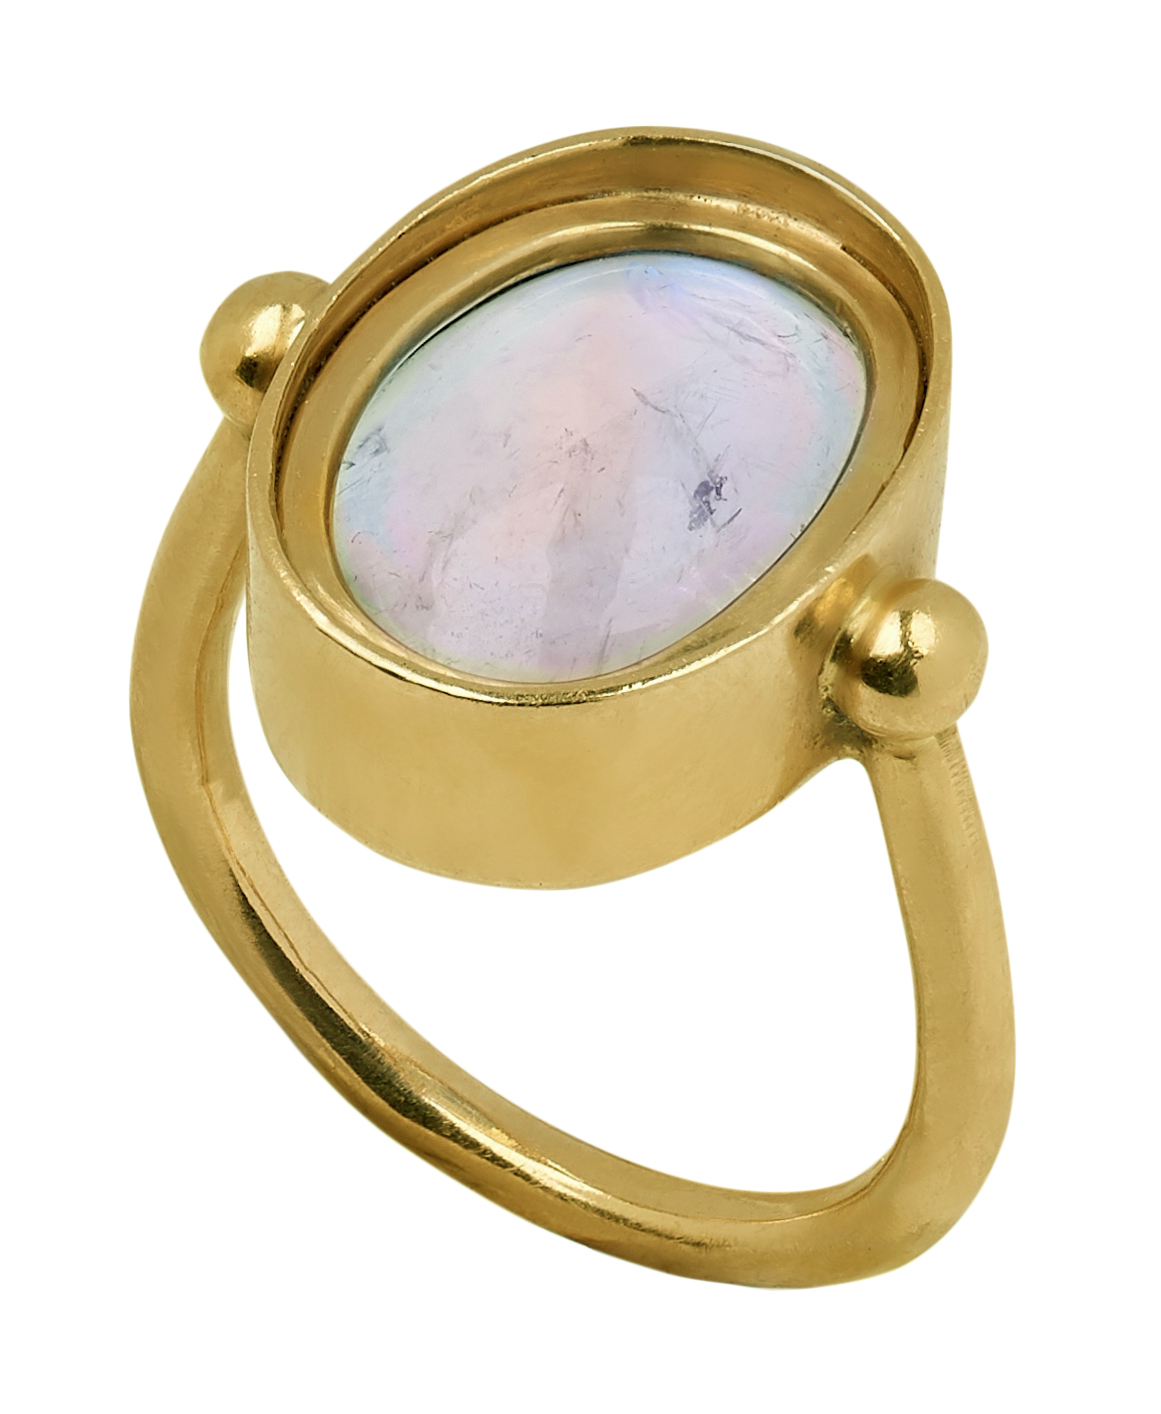 18ct gold oval cabochon rainbow moonstone ring - Image 4 of 4